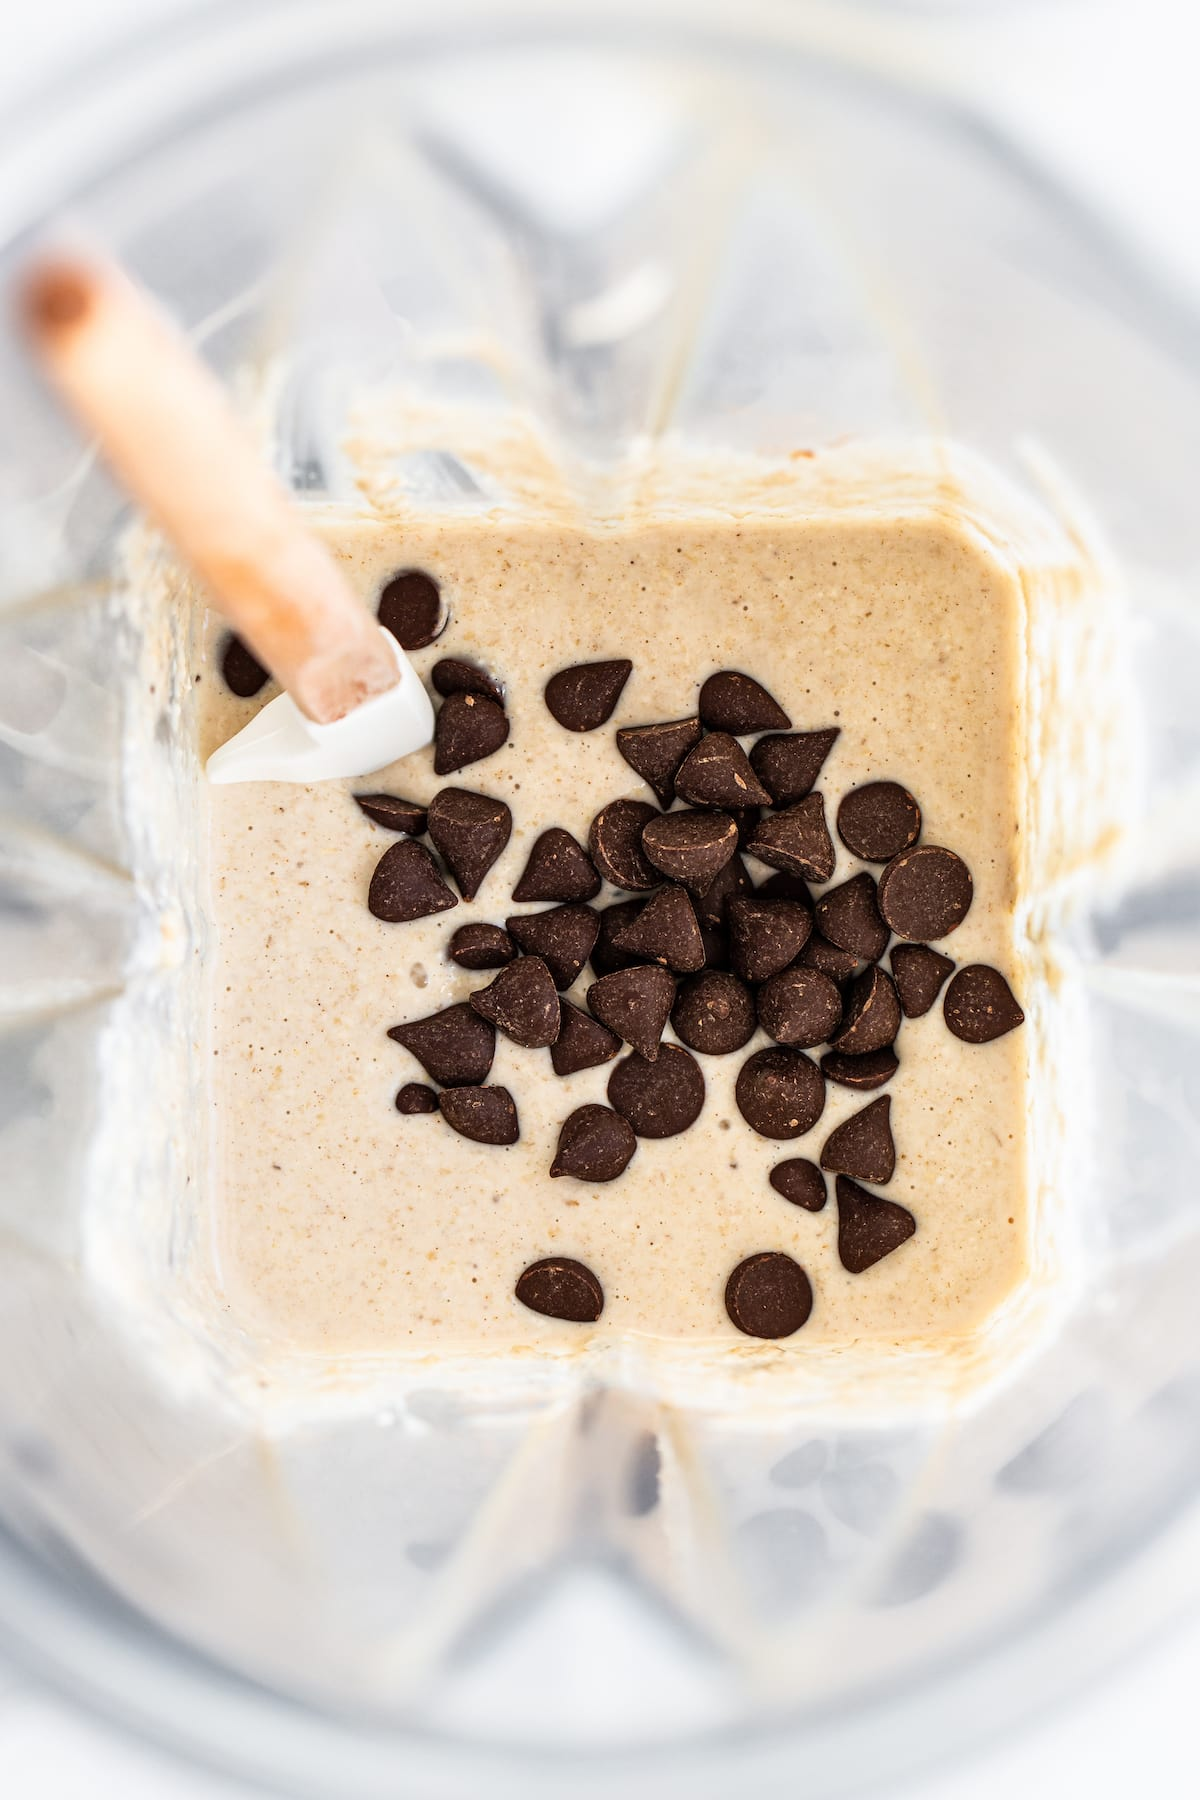 Blender of pancake batter with chocolate chips thrown in.